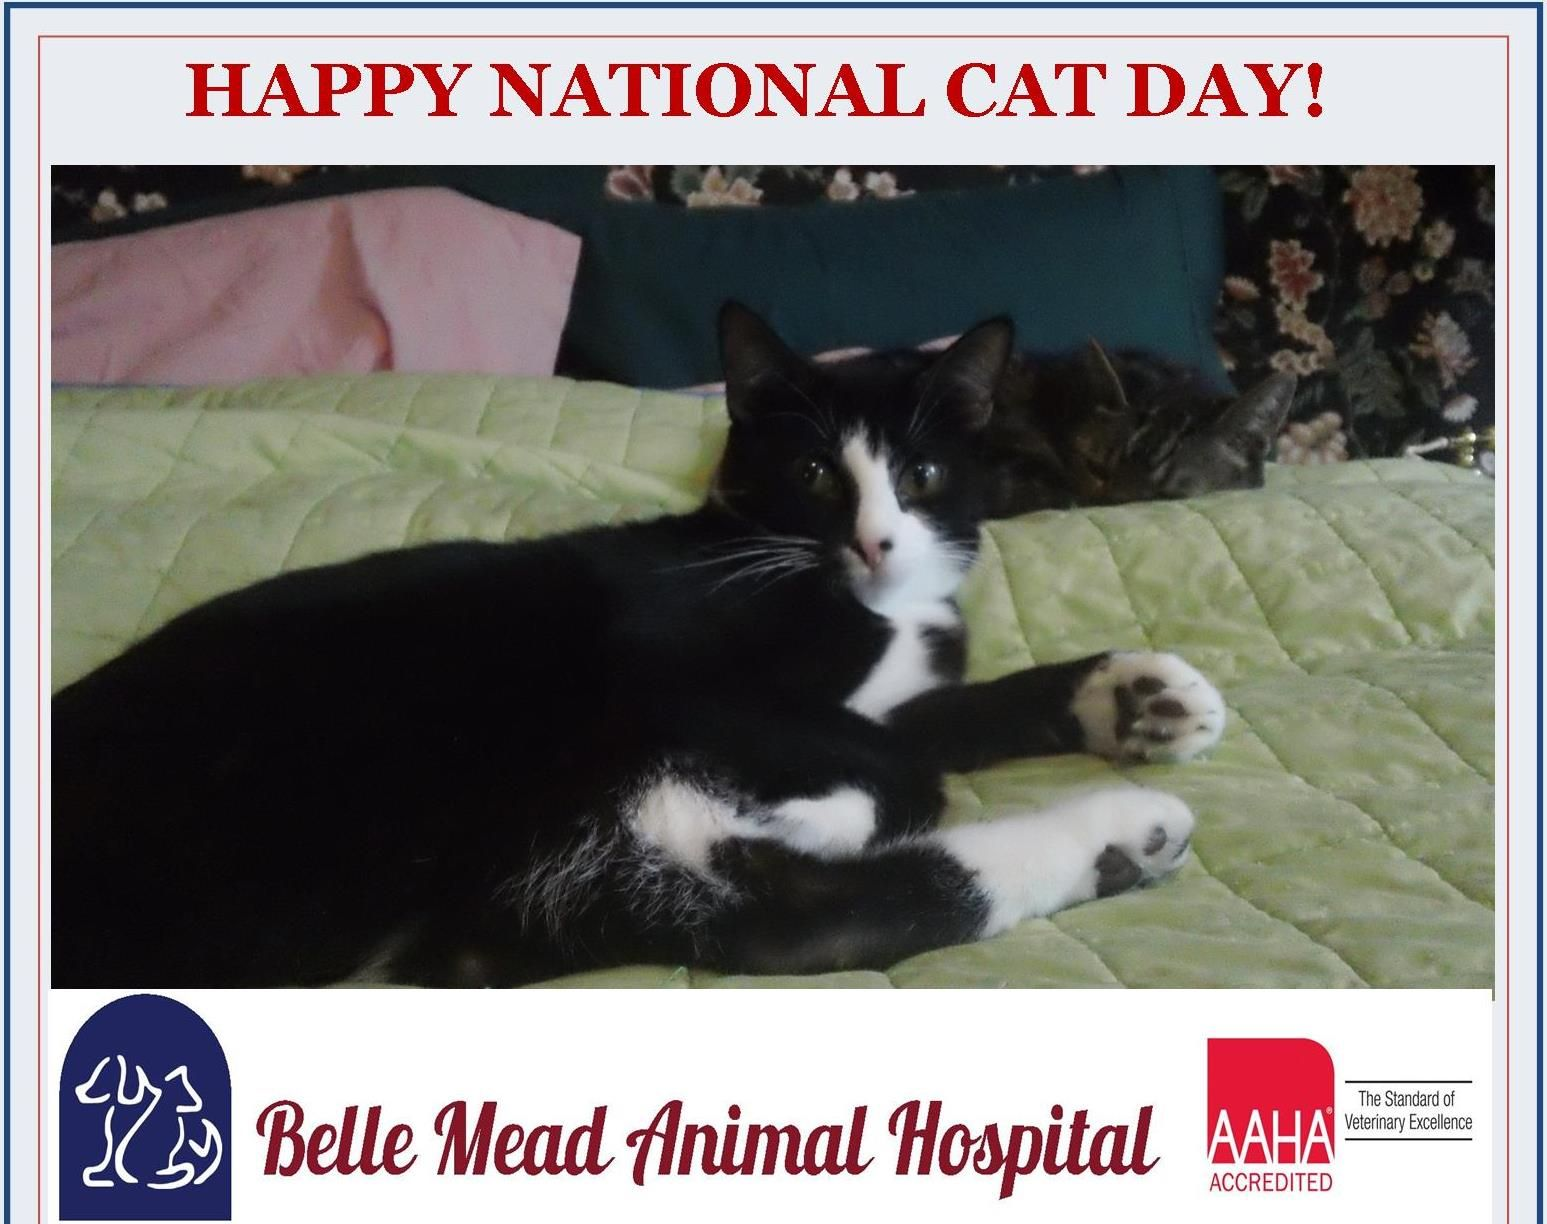 Happy National Cat Day October 29th !! Events and